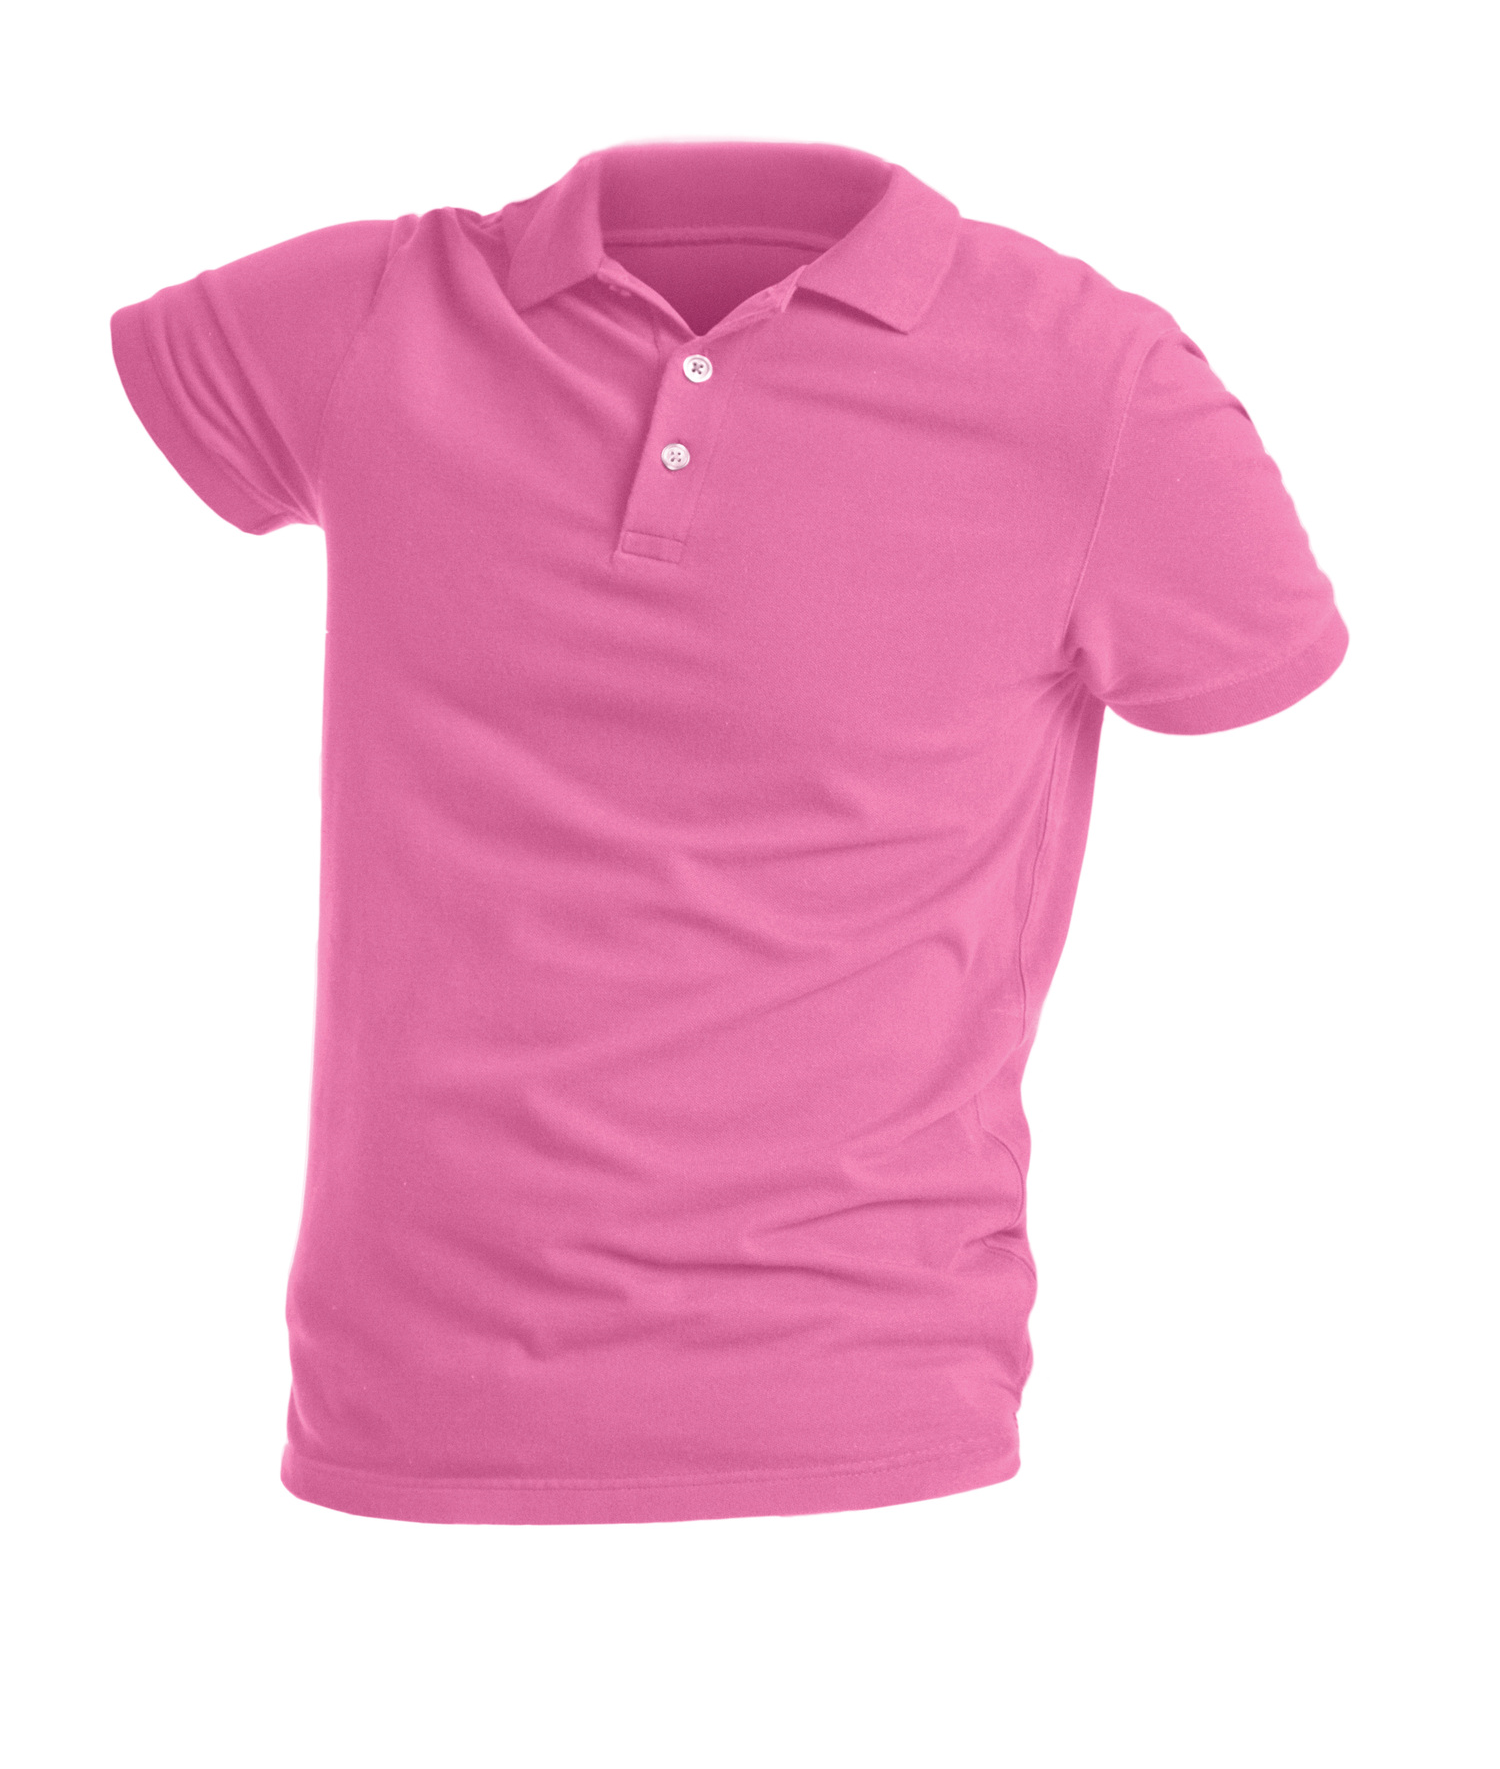 Polo2_BEFORE_Pink.jpg